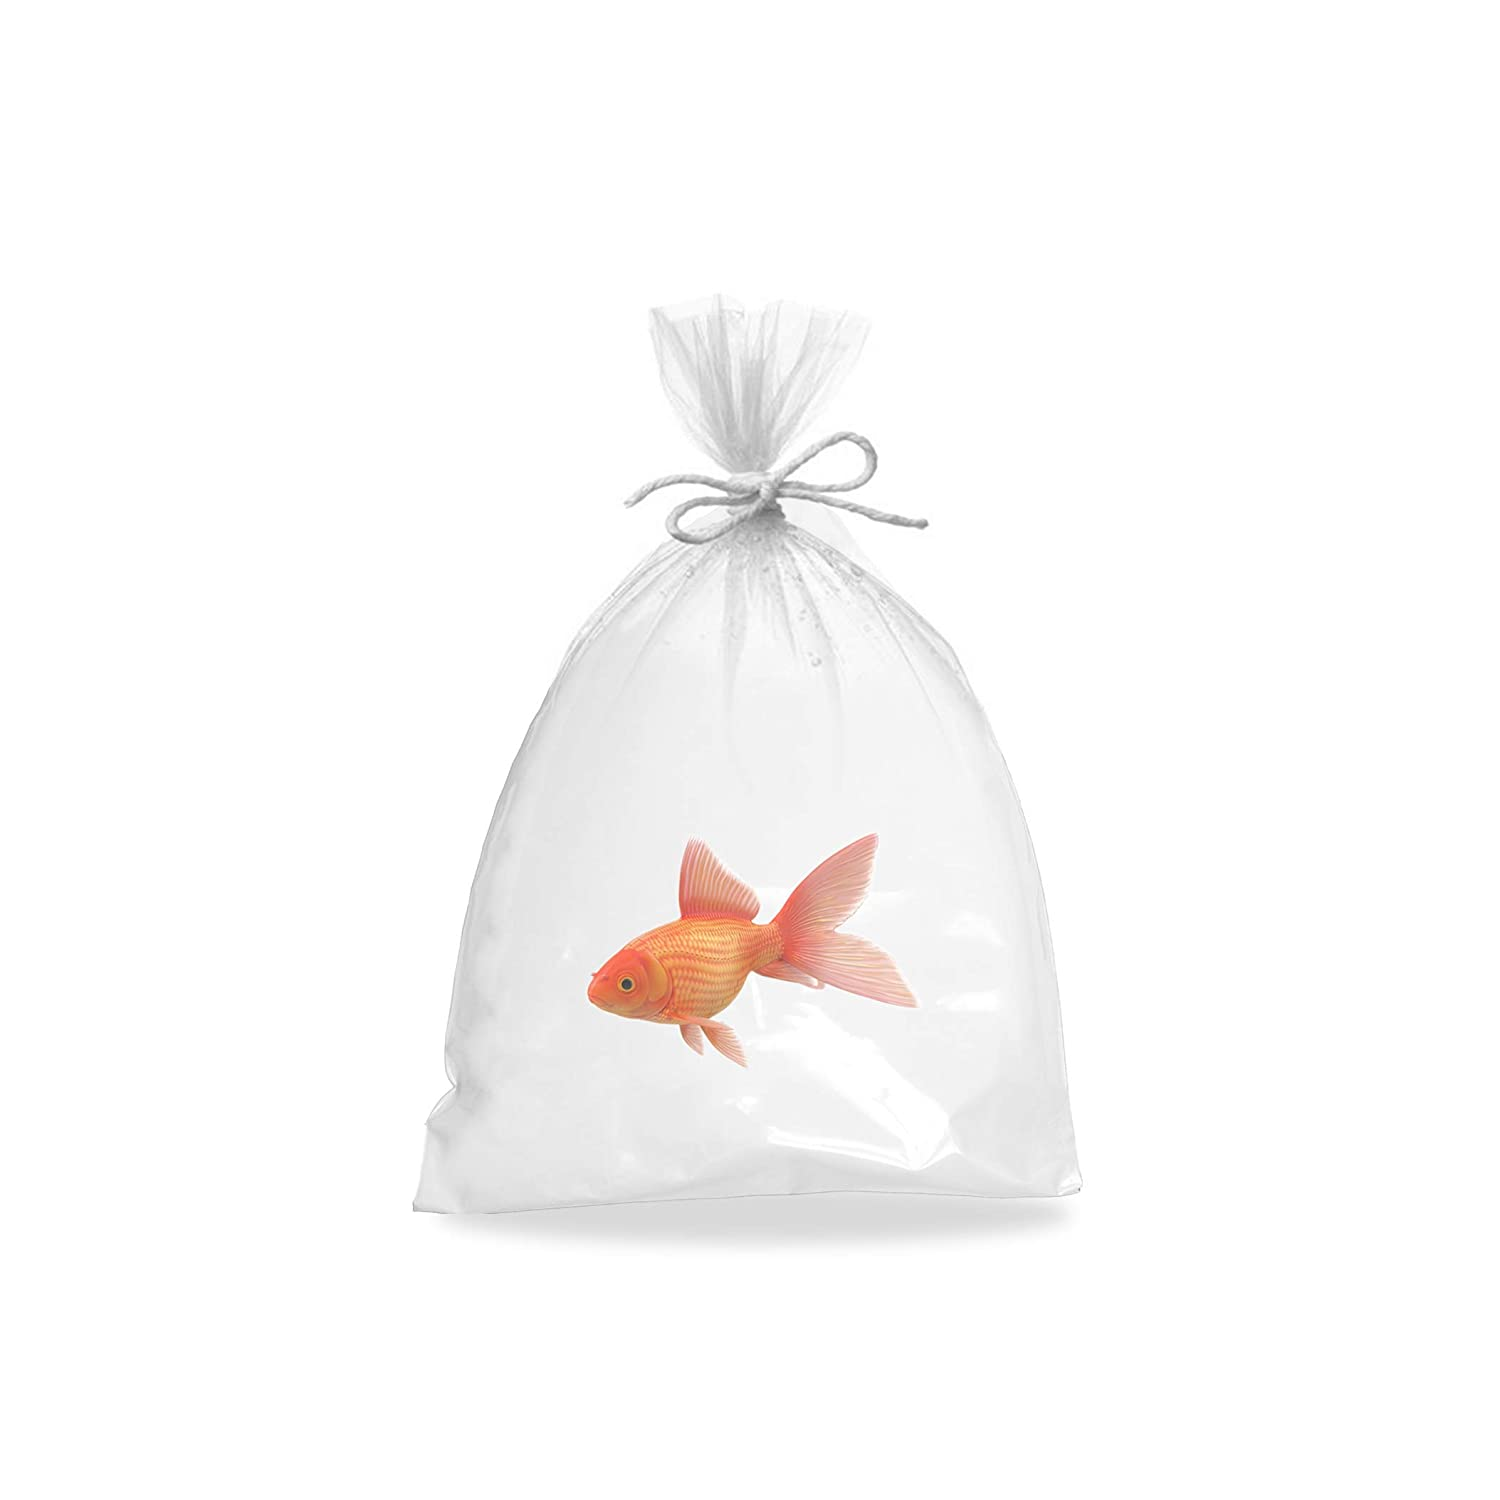 APQ Pack of 100 Fish Poly Bags 10 x 20 Jumbo Clear Polyethylene Bags 10x20, 2 mil Open Ended Bags for Packing and Storing Plastic Bags for Industrial, Food Service